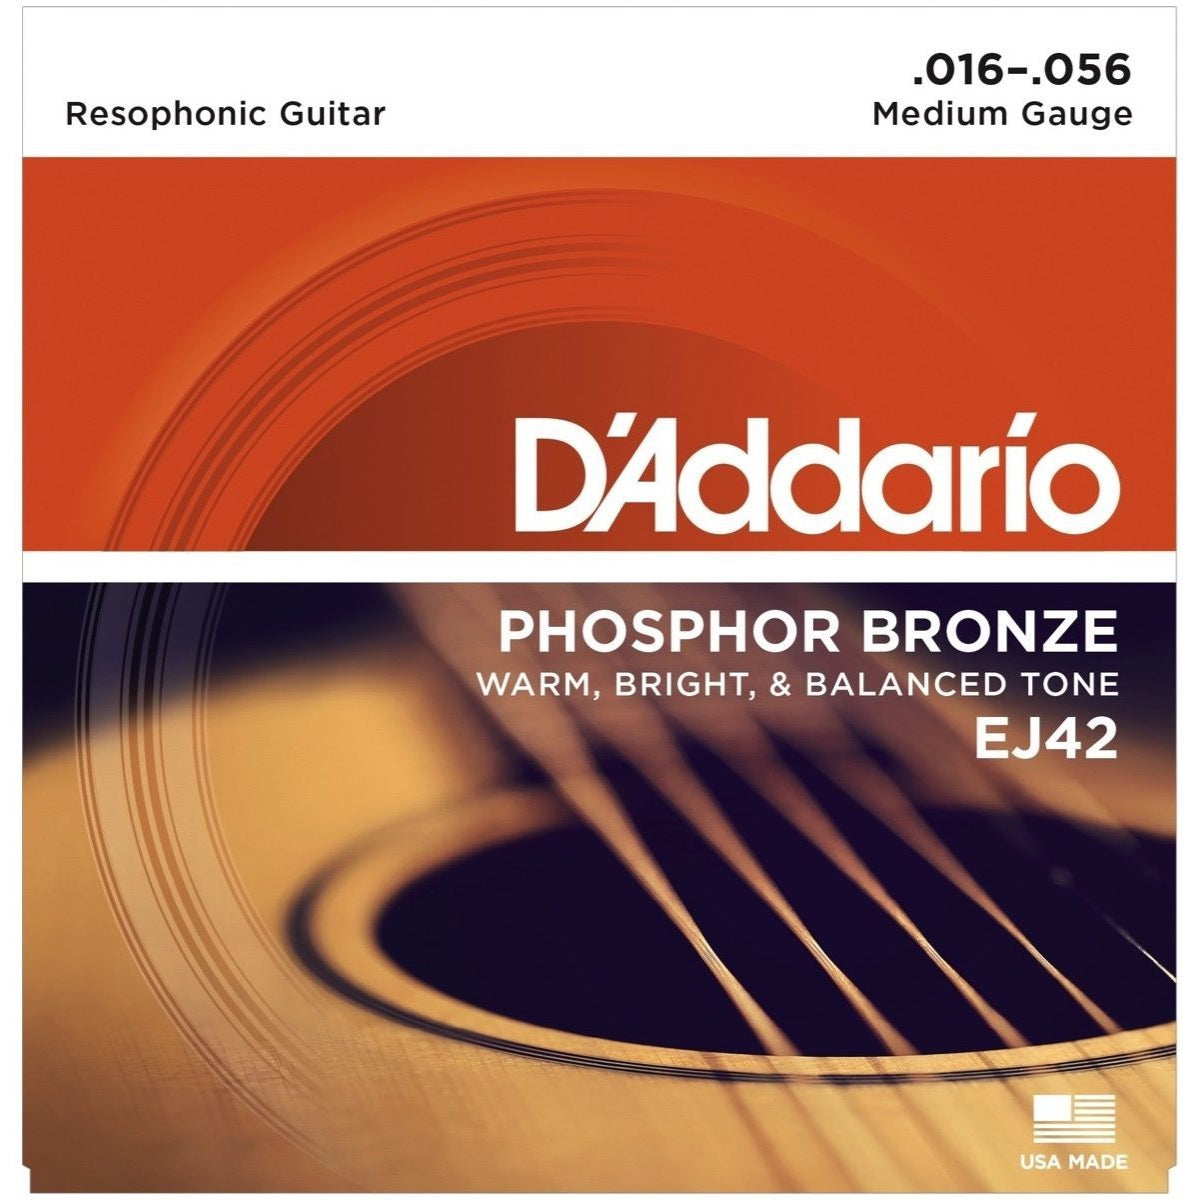 D'Addario EJ42 Resophonic Acoustic Guitar Strings, Meidum